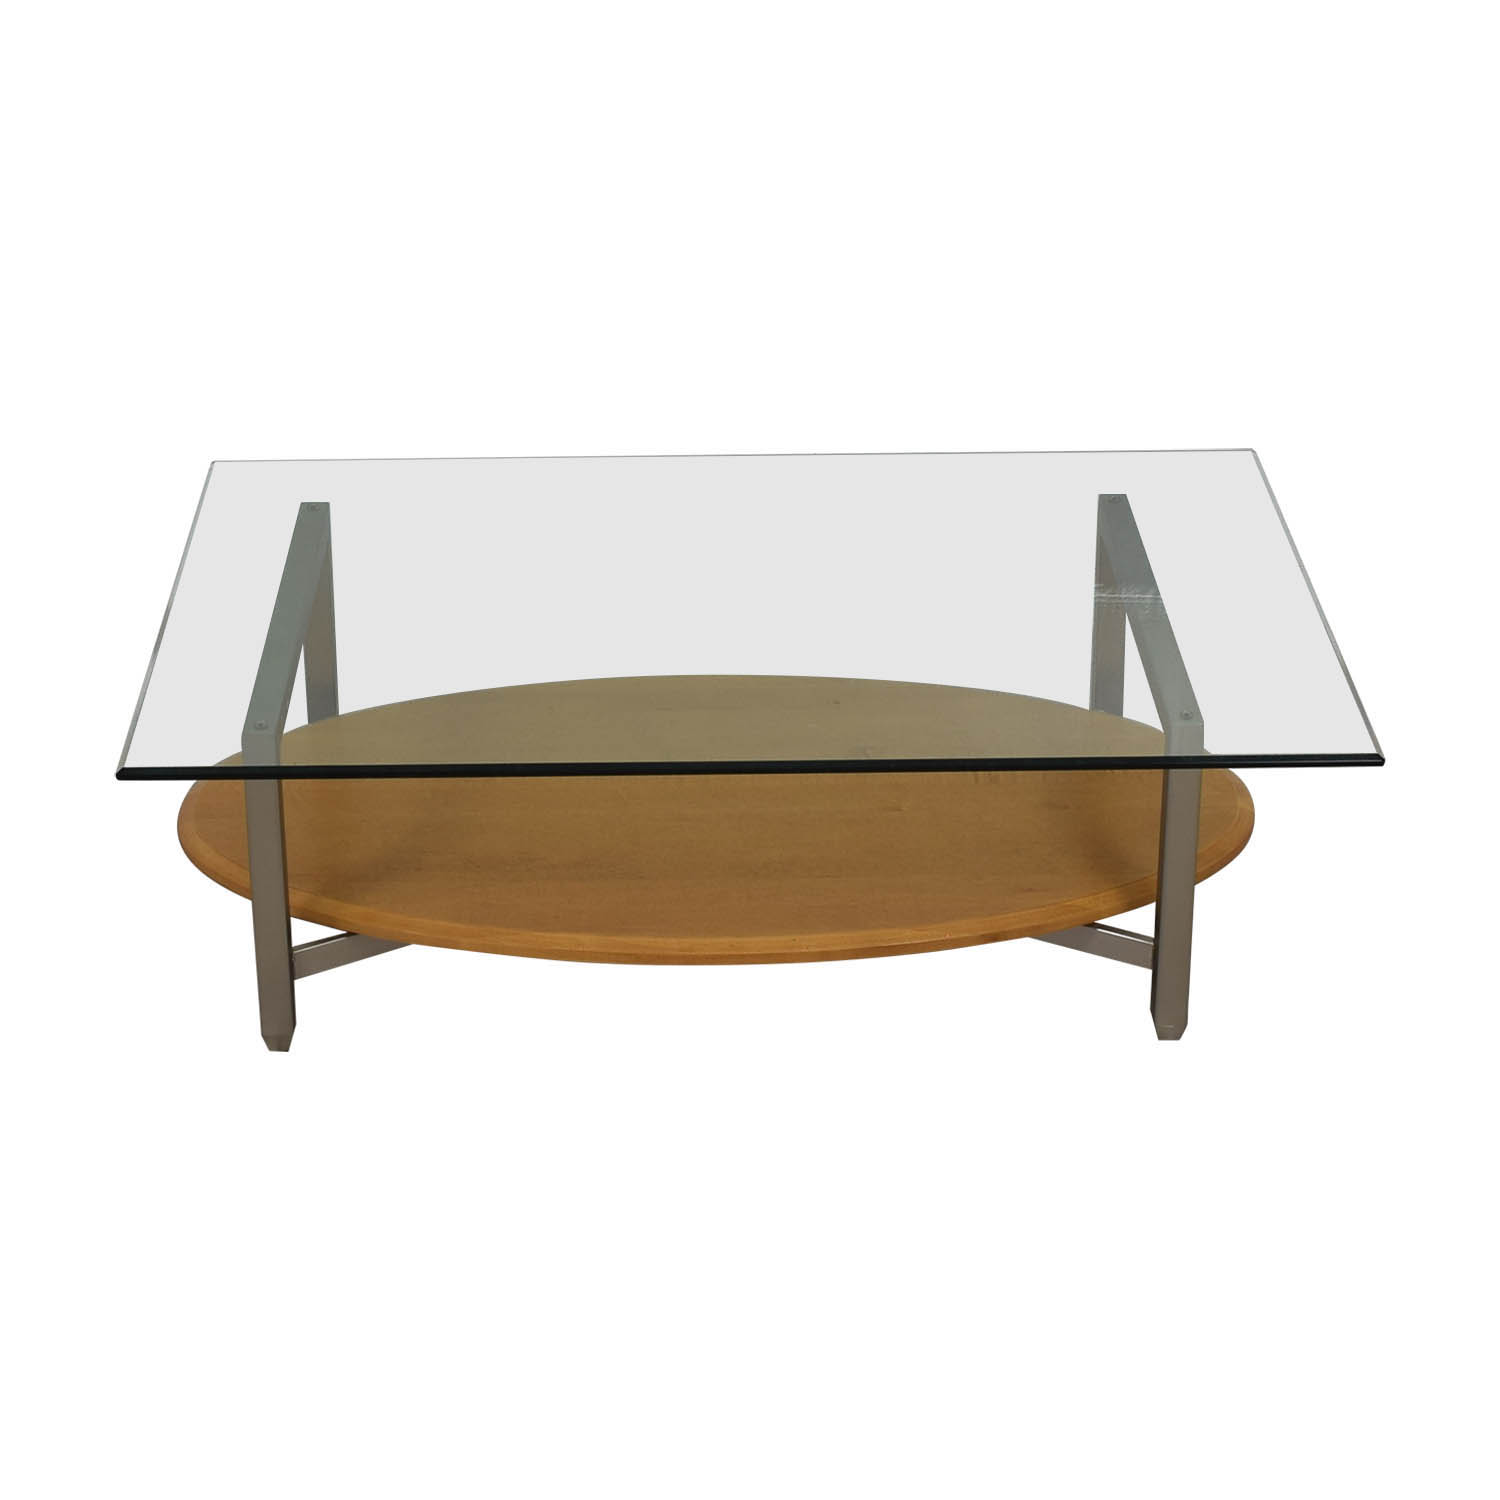 Ethan Allen Tuscan Coffee Table: Ethan Allen Ethan Allen Glass Metal Wood Coffee